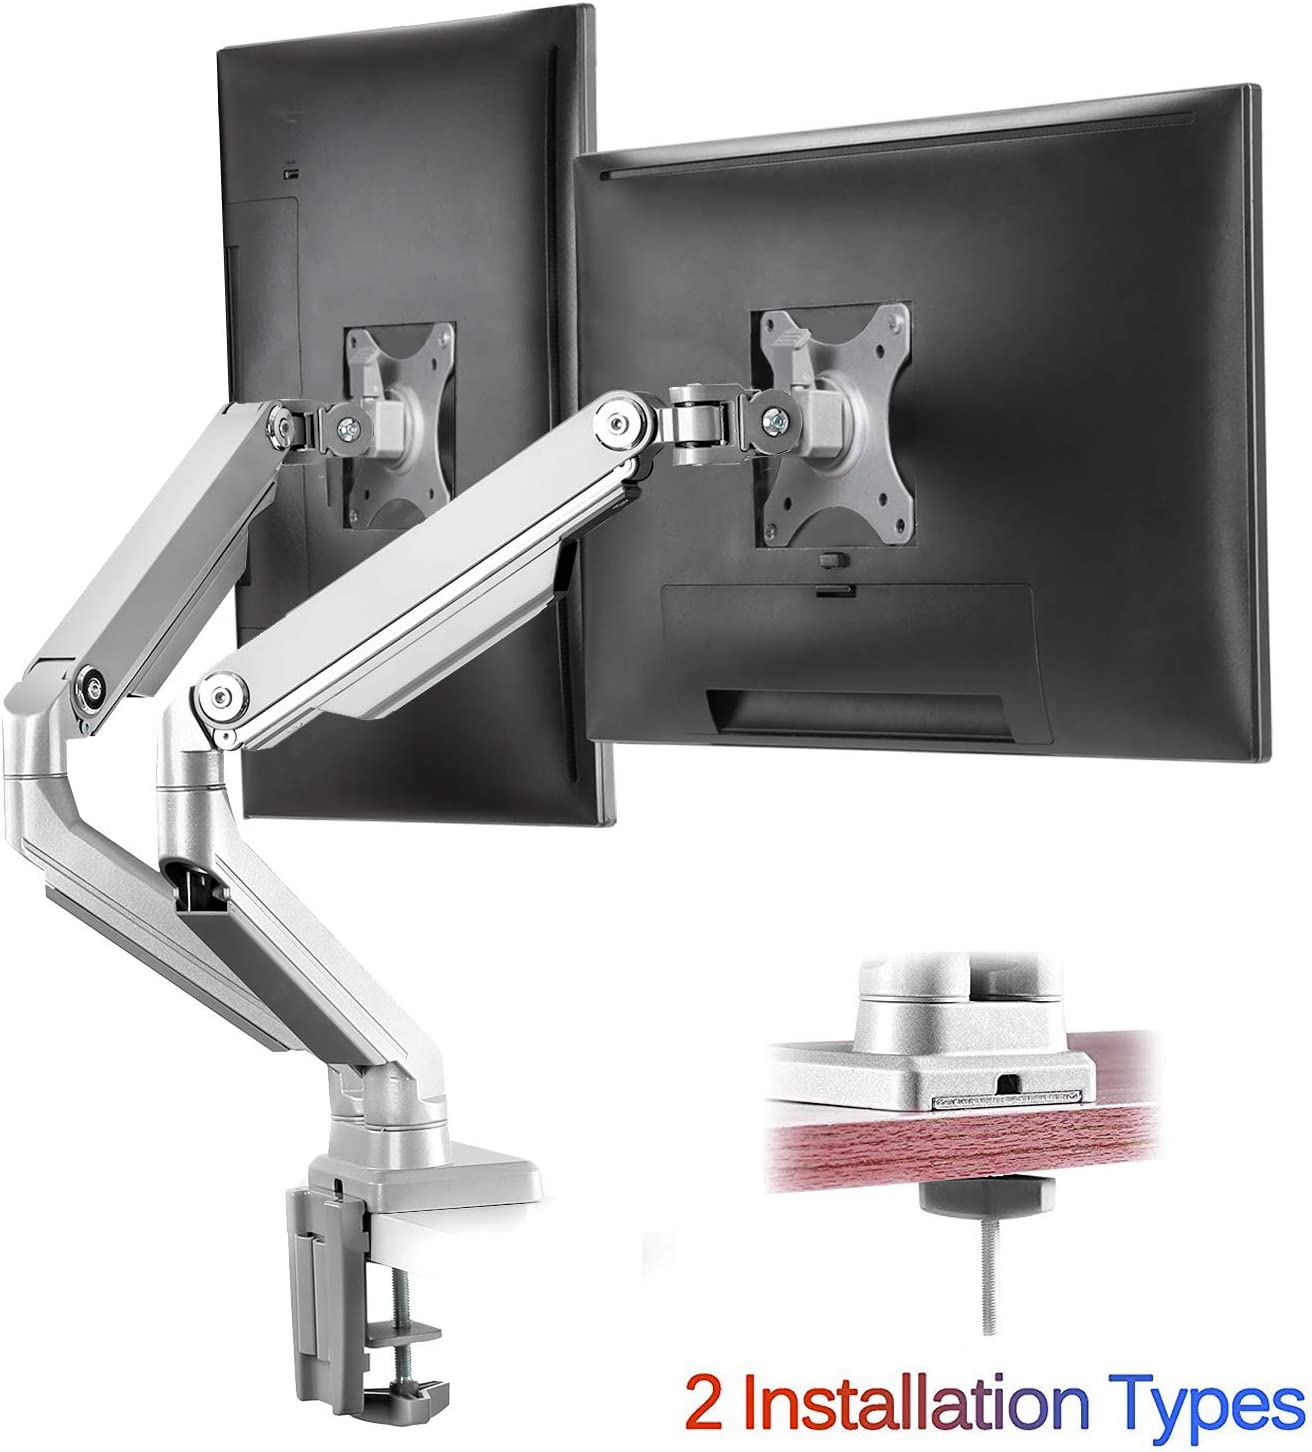 """IMtKotW Dual Arm Monitor Stand - Height Adjustable Full Motion Mechanical Spring Monitor Desk Mount with C Clamp/Grommet Base Fits 17""""-32"""" LCD LED Computer Screen up to 17.6 lbs per"""